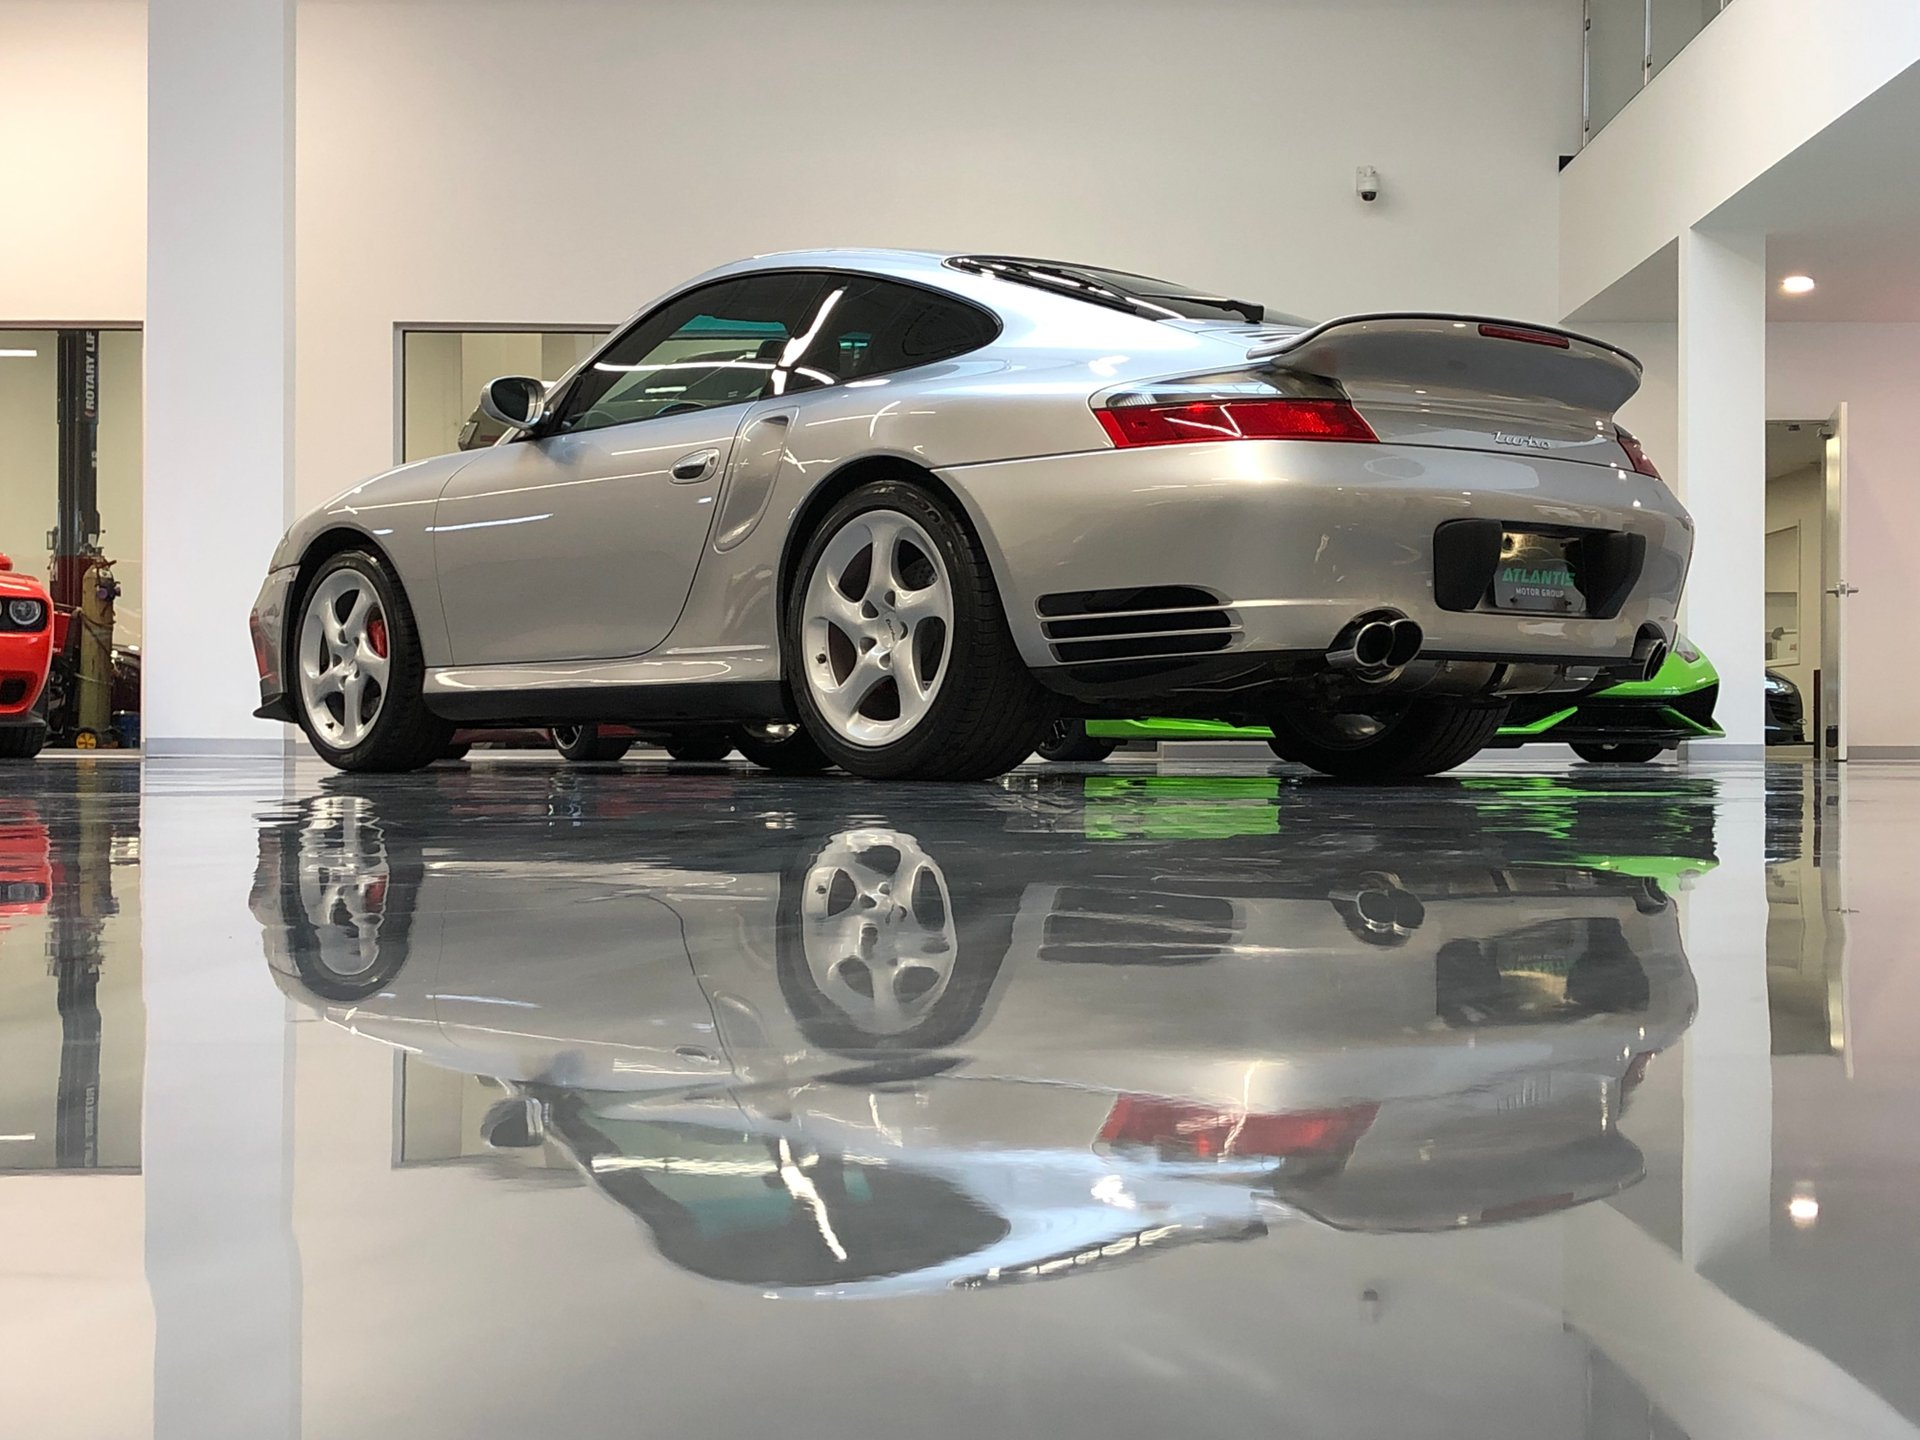 2001 porsche 911 carrera 2dr carrera turbo 6 spd manual